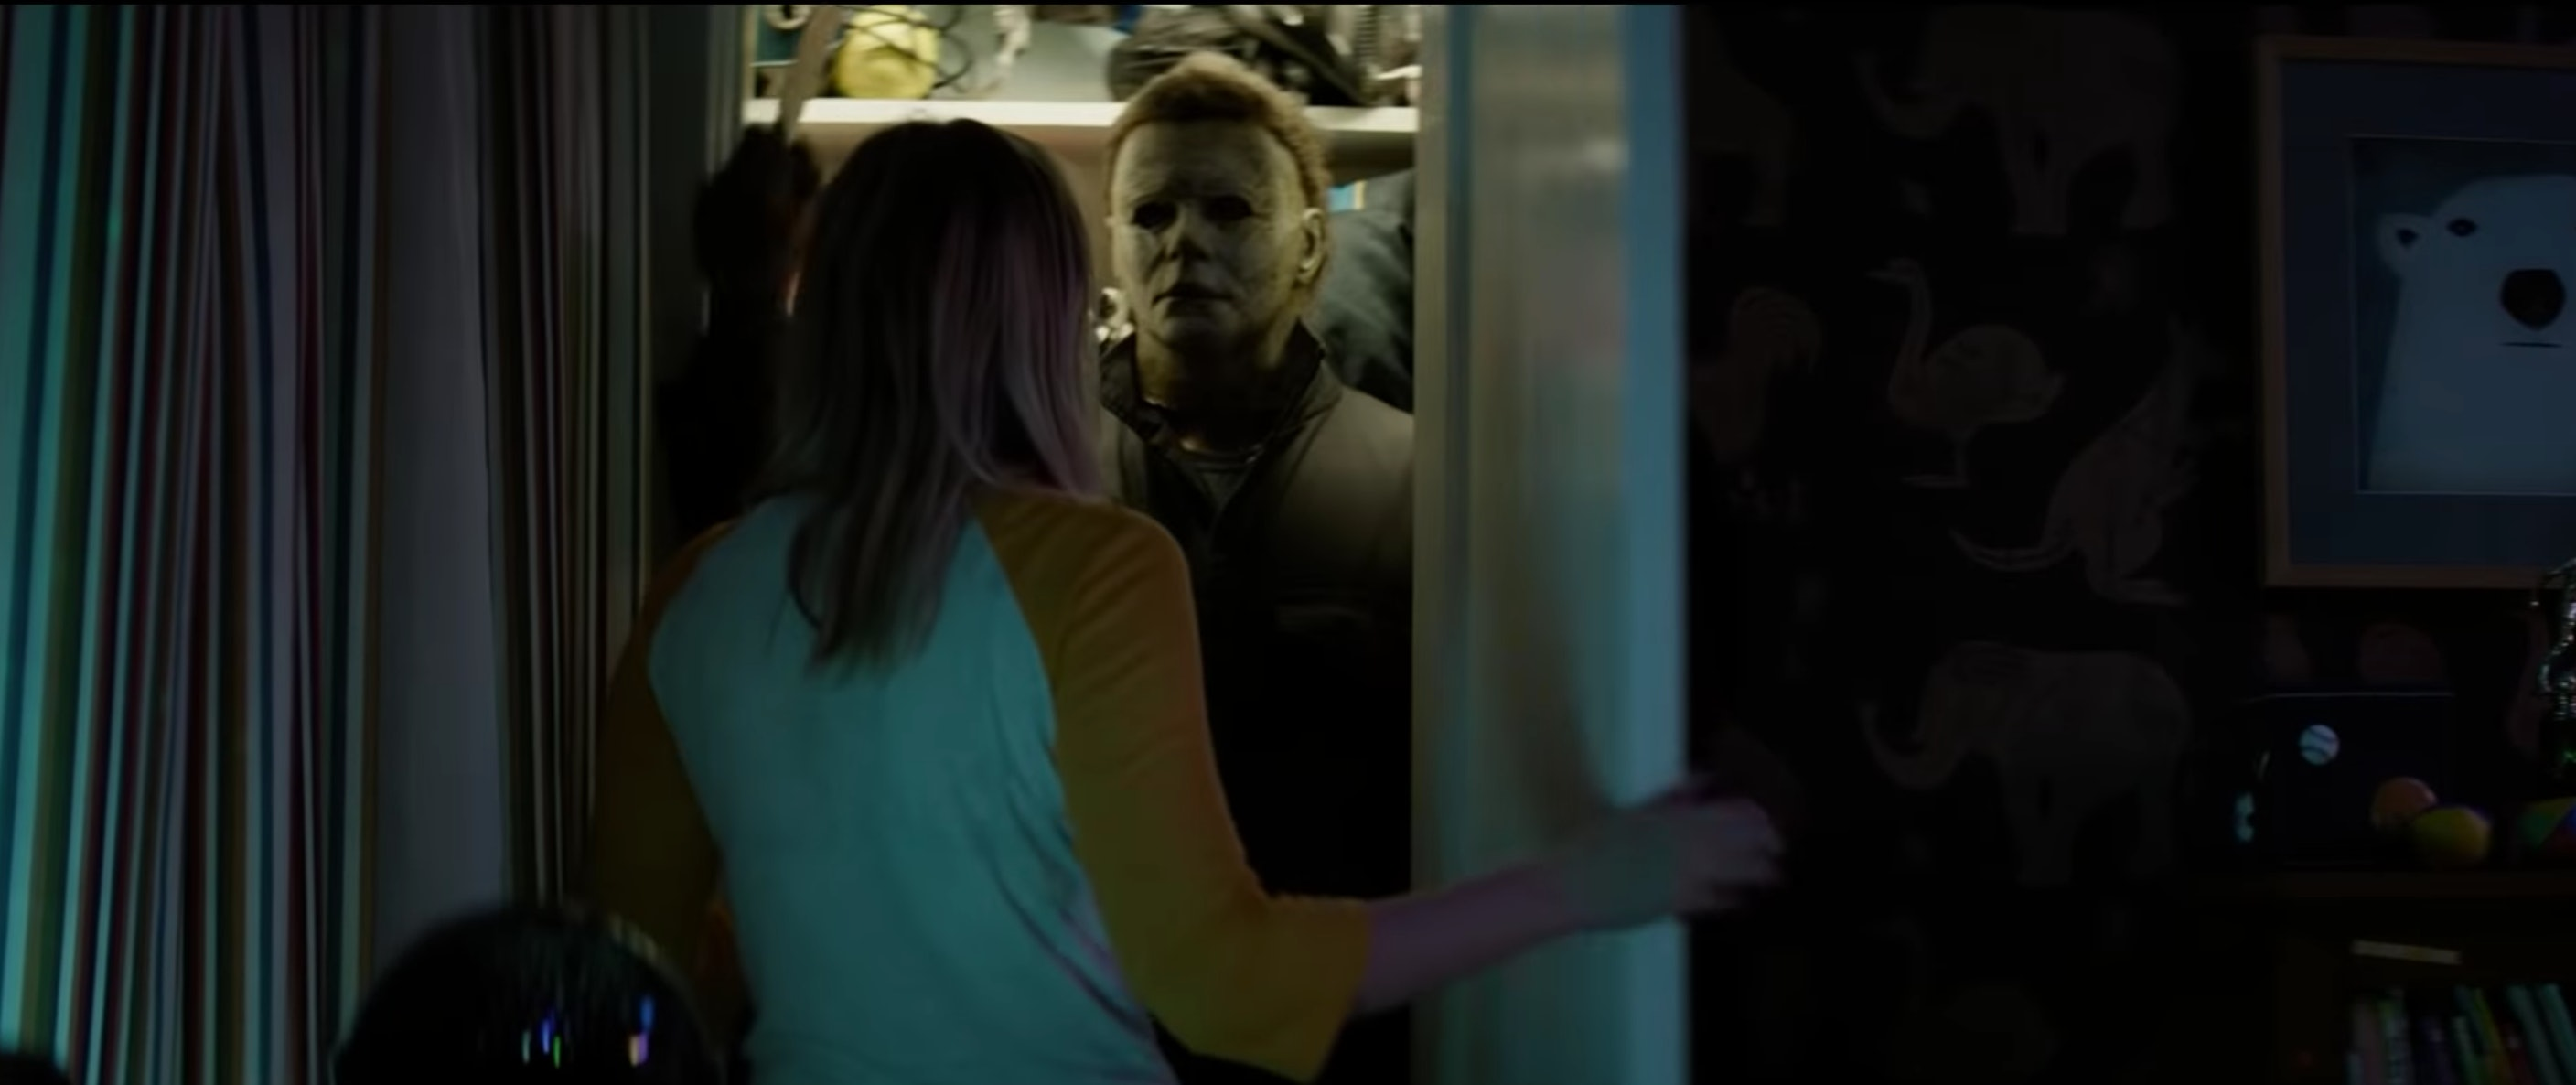 the new 'halloween' trailer will give you major true crime vibes in